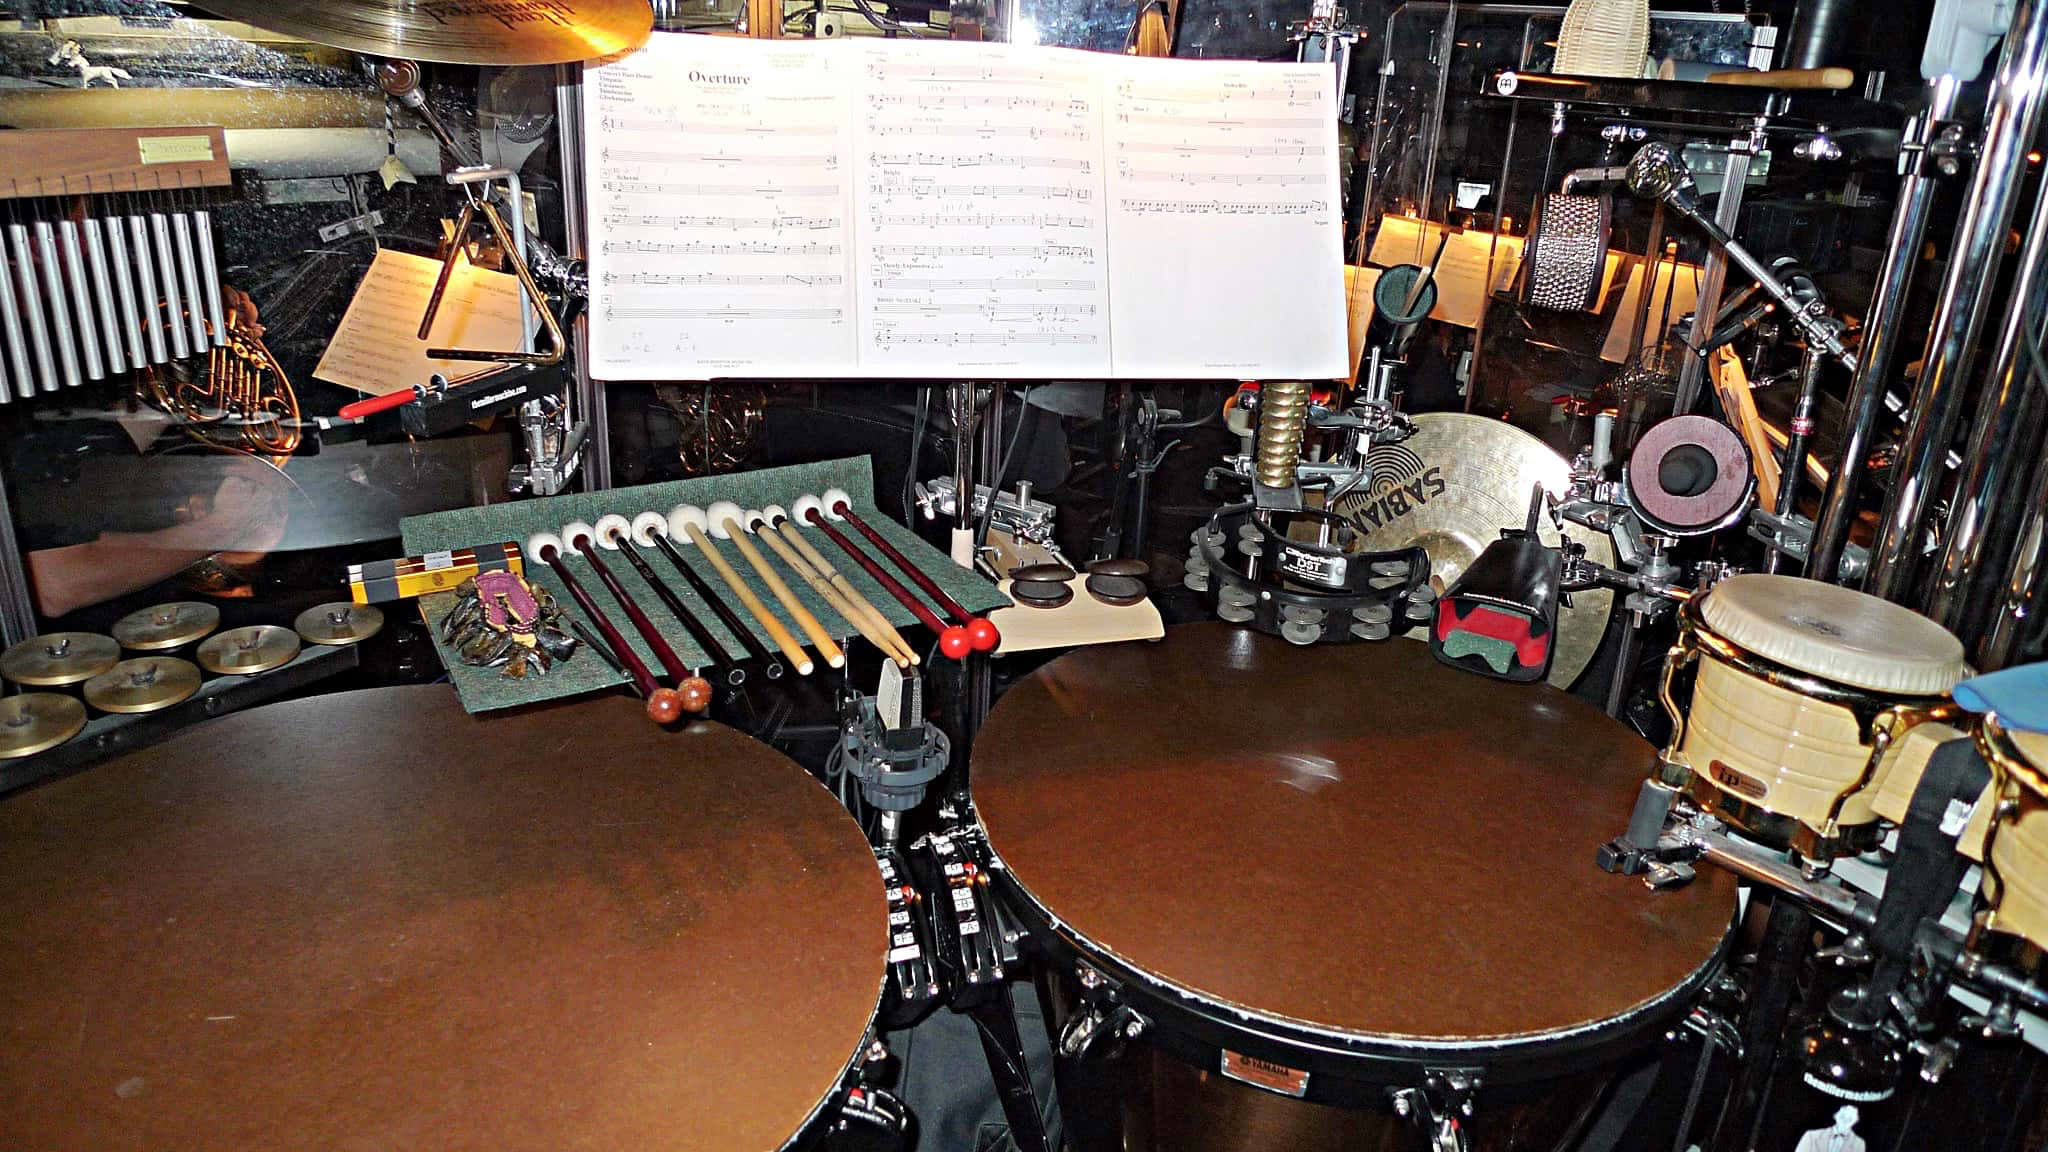 Billy Miller's percussion setup for the Broadway production of The Addams Family at the Lunt-Fontanne Theatre.